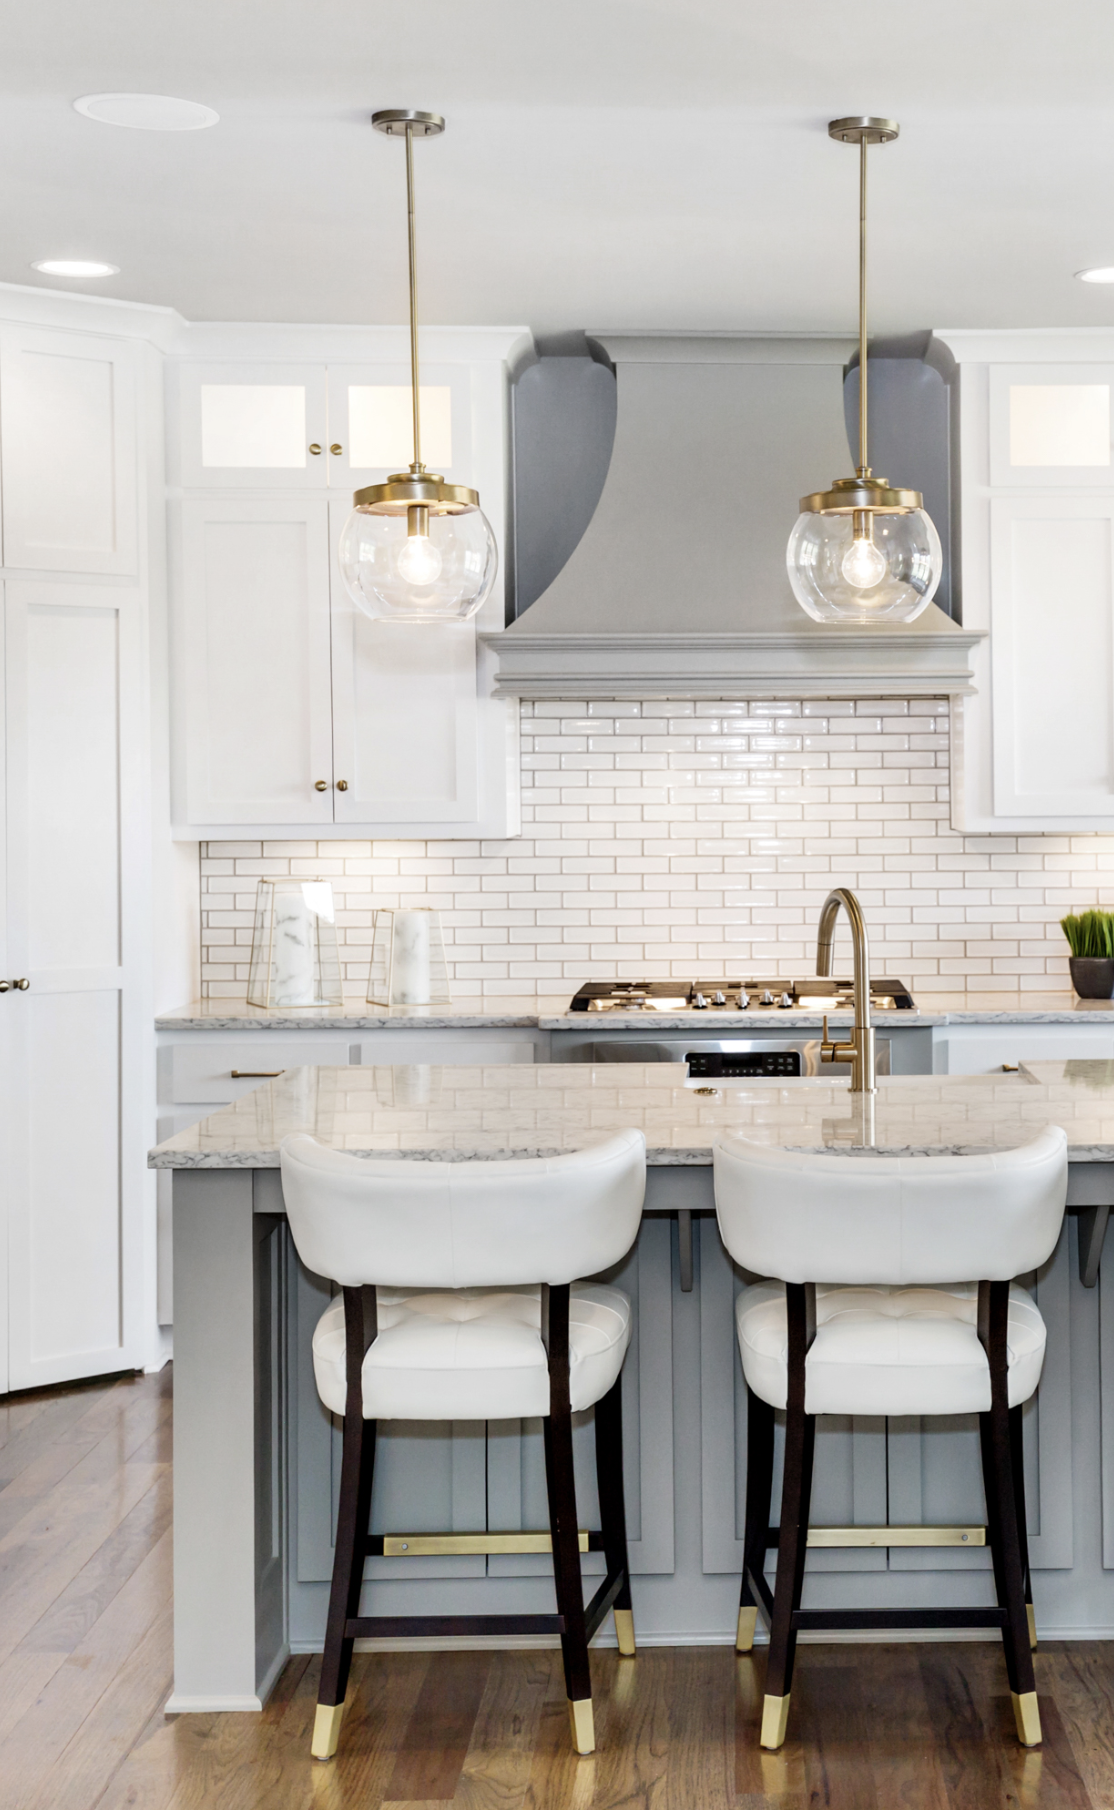 The Carter By Roeser Homes Kitchen Remodel Home Grey Countertops